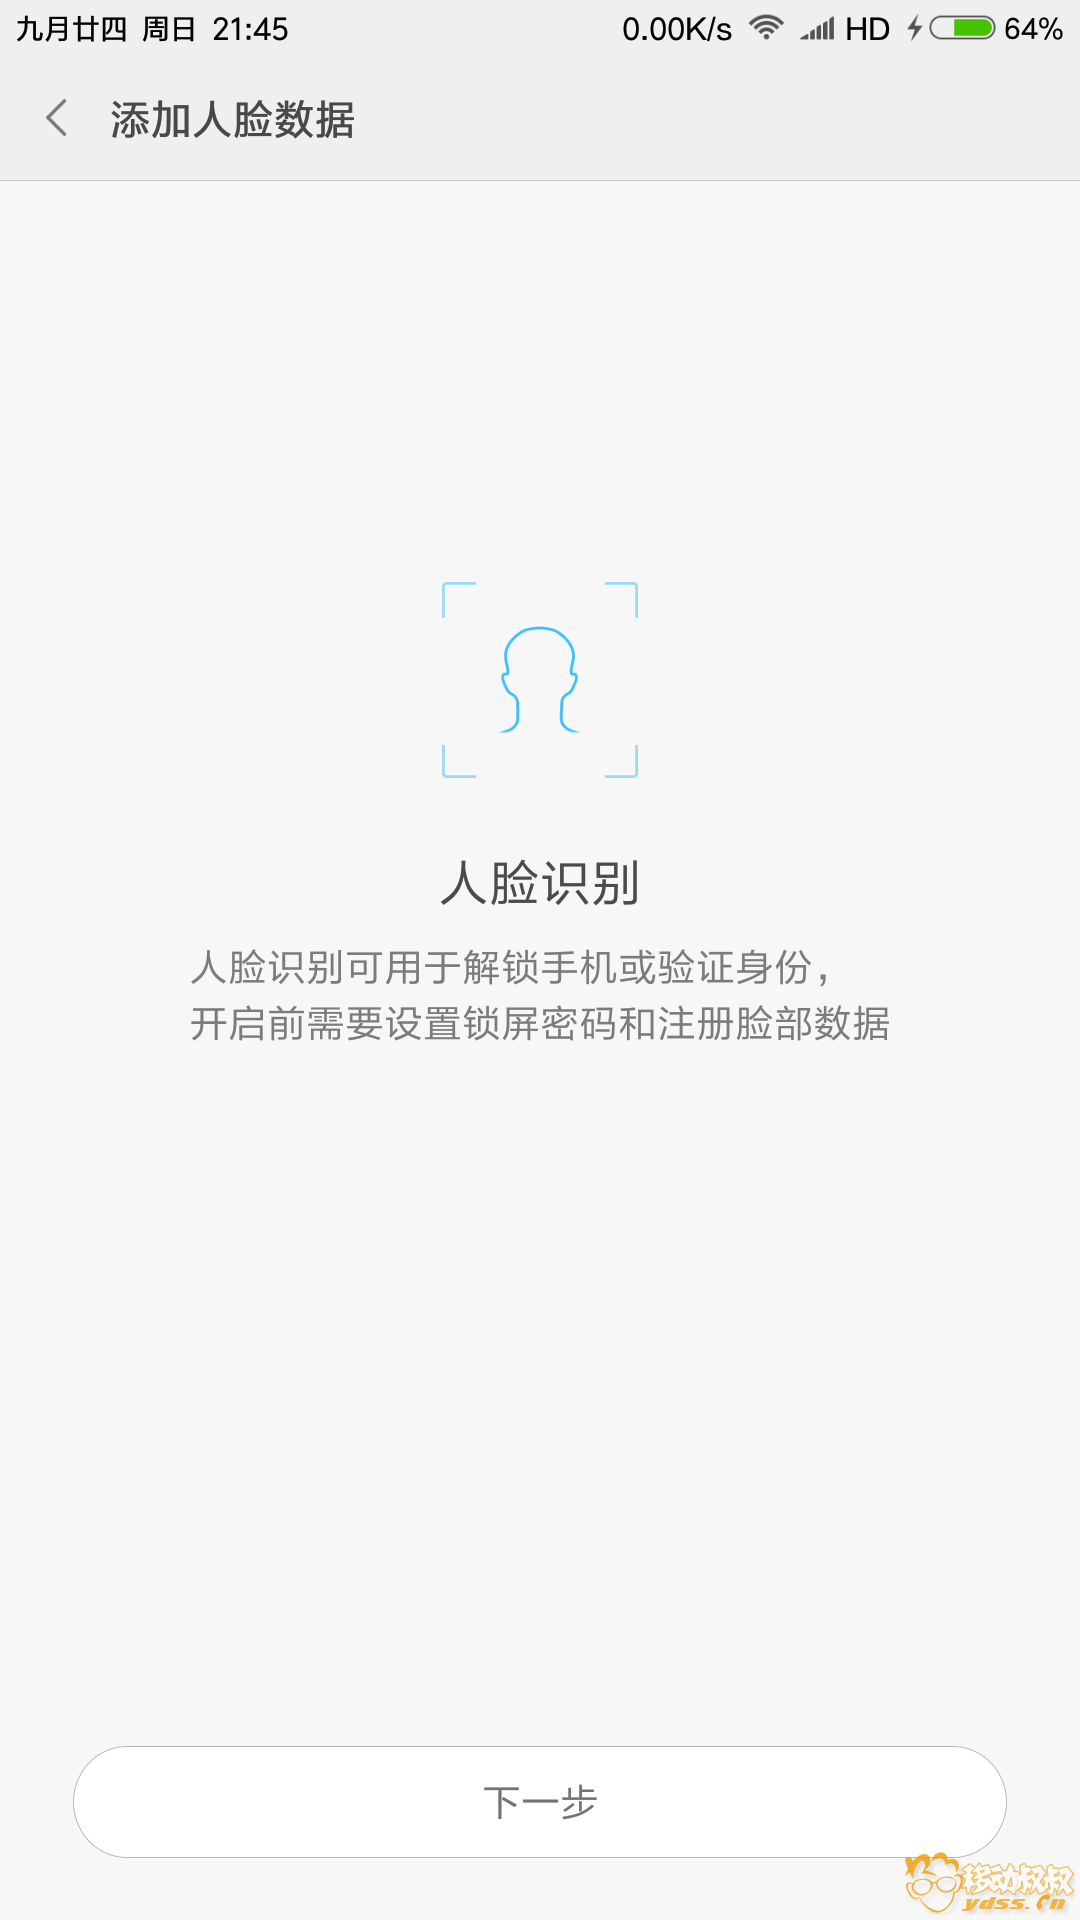 Screenshot_2017-11-12-21-45-41-329_com.android.keyguard.png